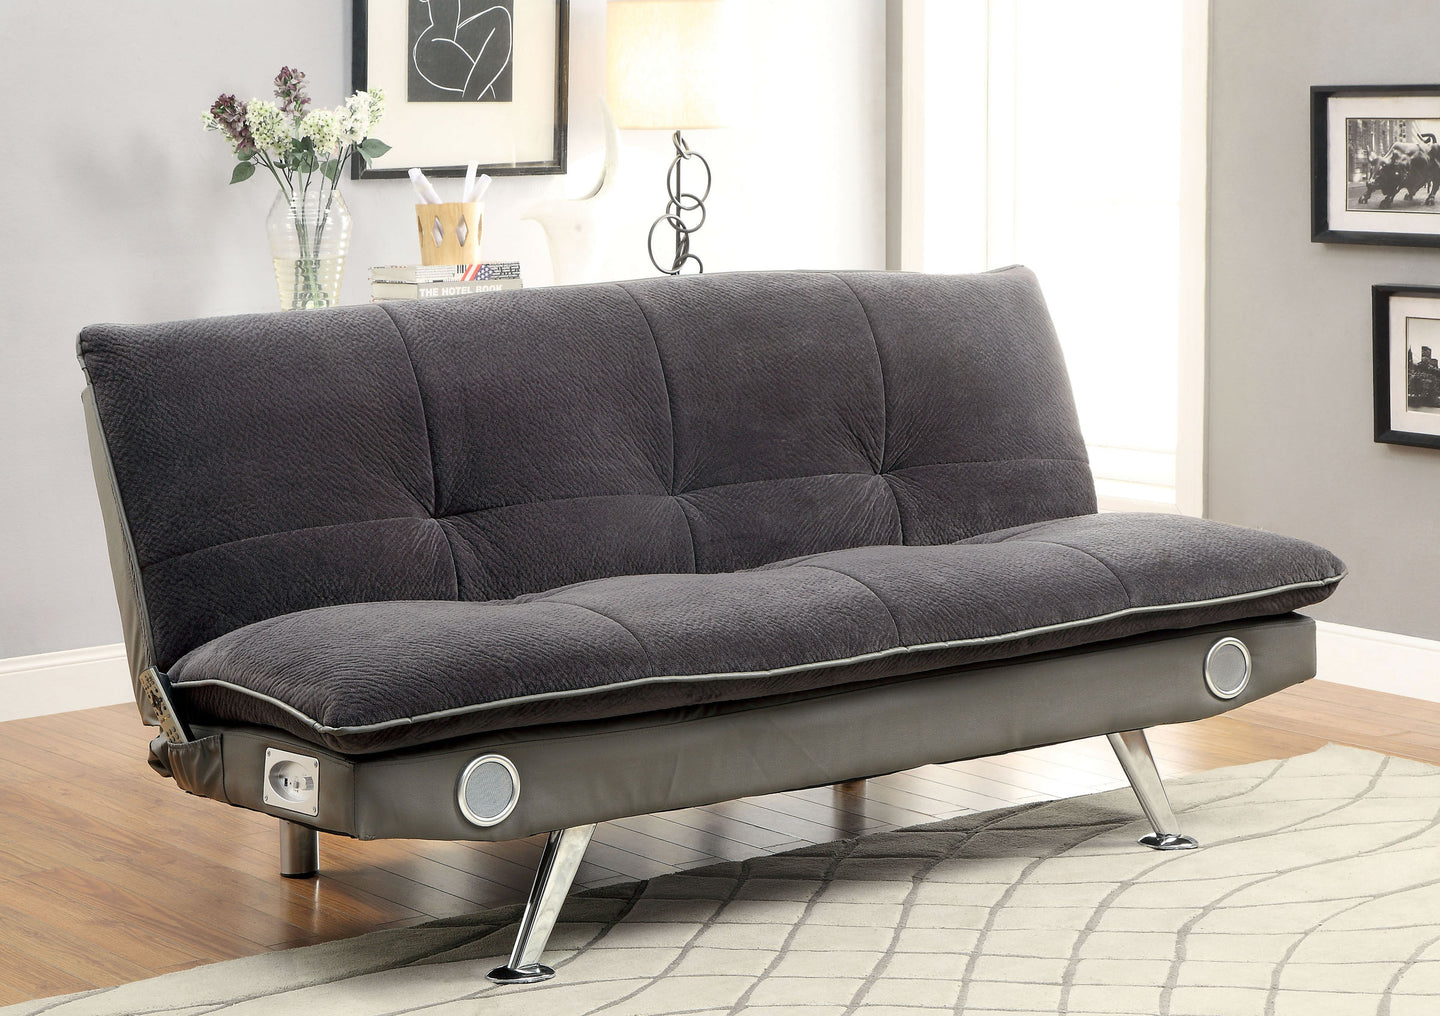 Gallagher CM2675GY Contemporary Gray Champion Fabric Futon Sofa Bed